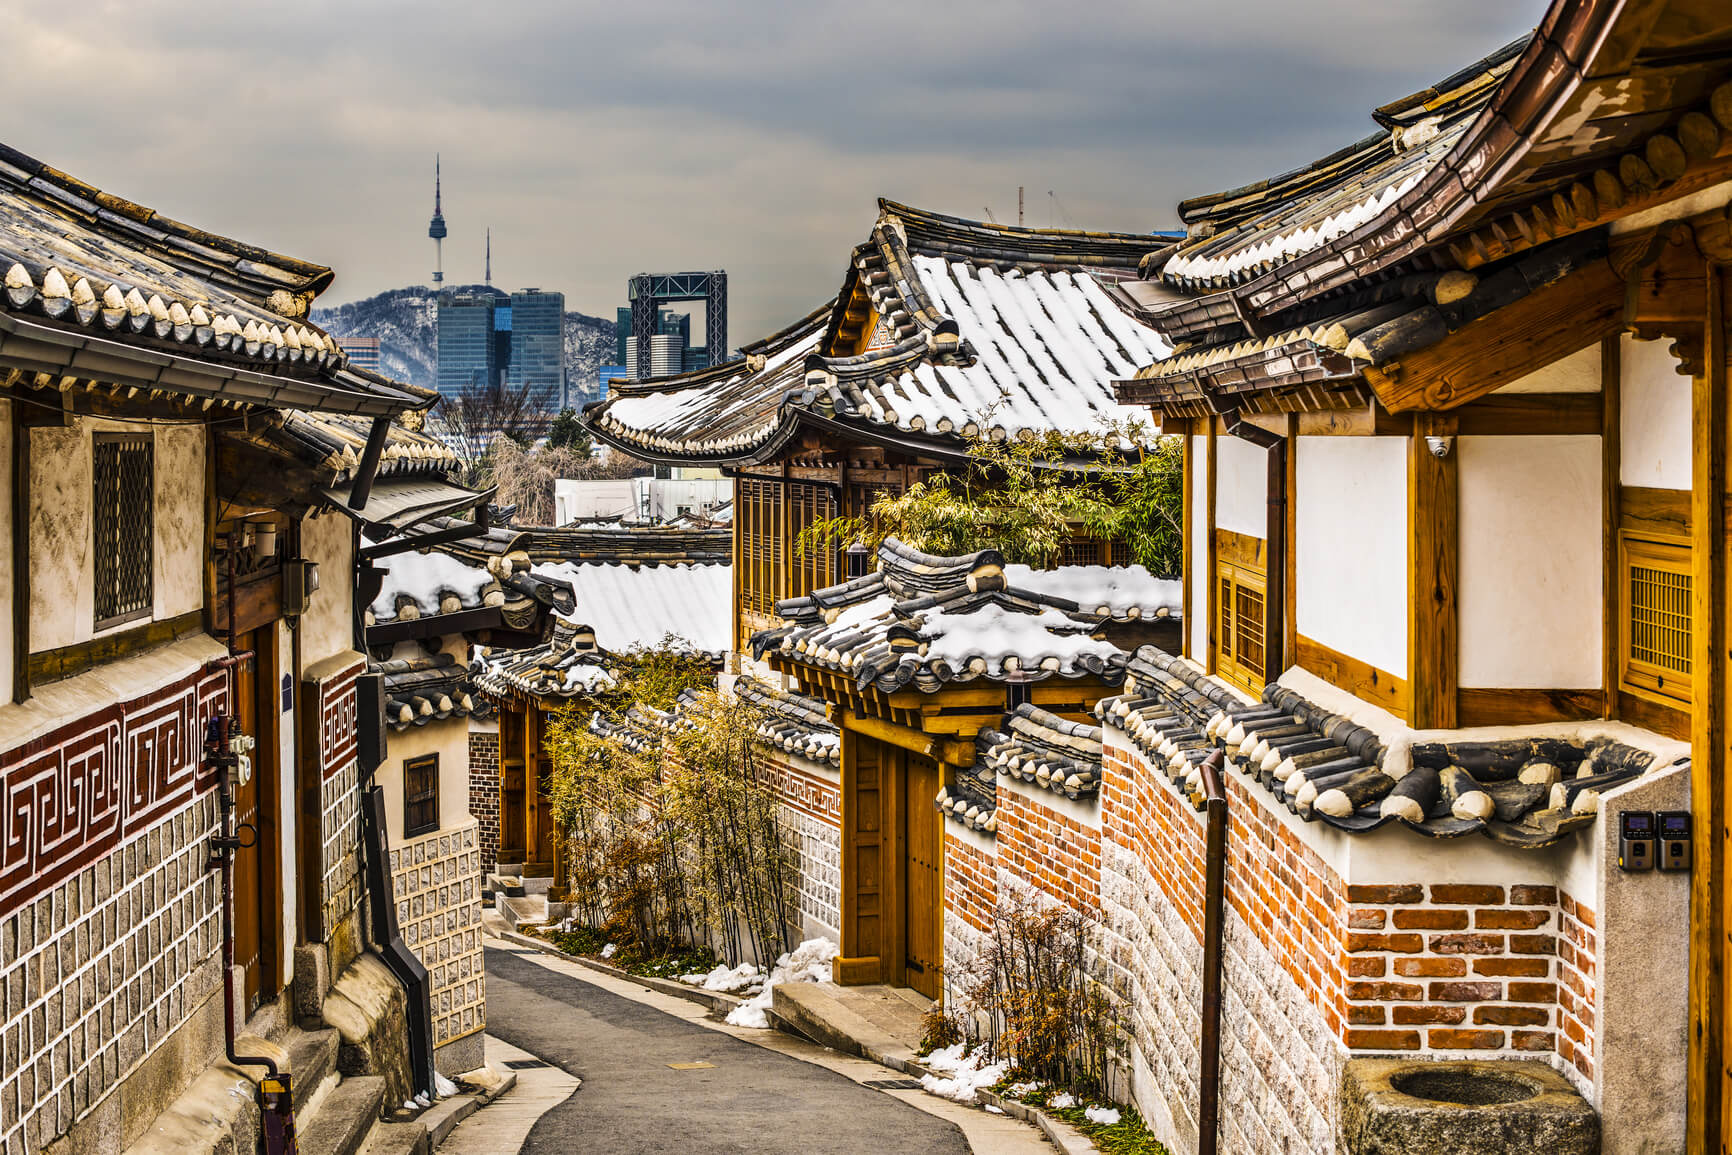 Non-stop from Budapest, Hungary to Seoul, South Korea for only €278 roundtrip